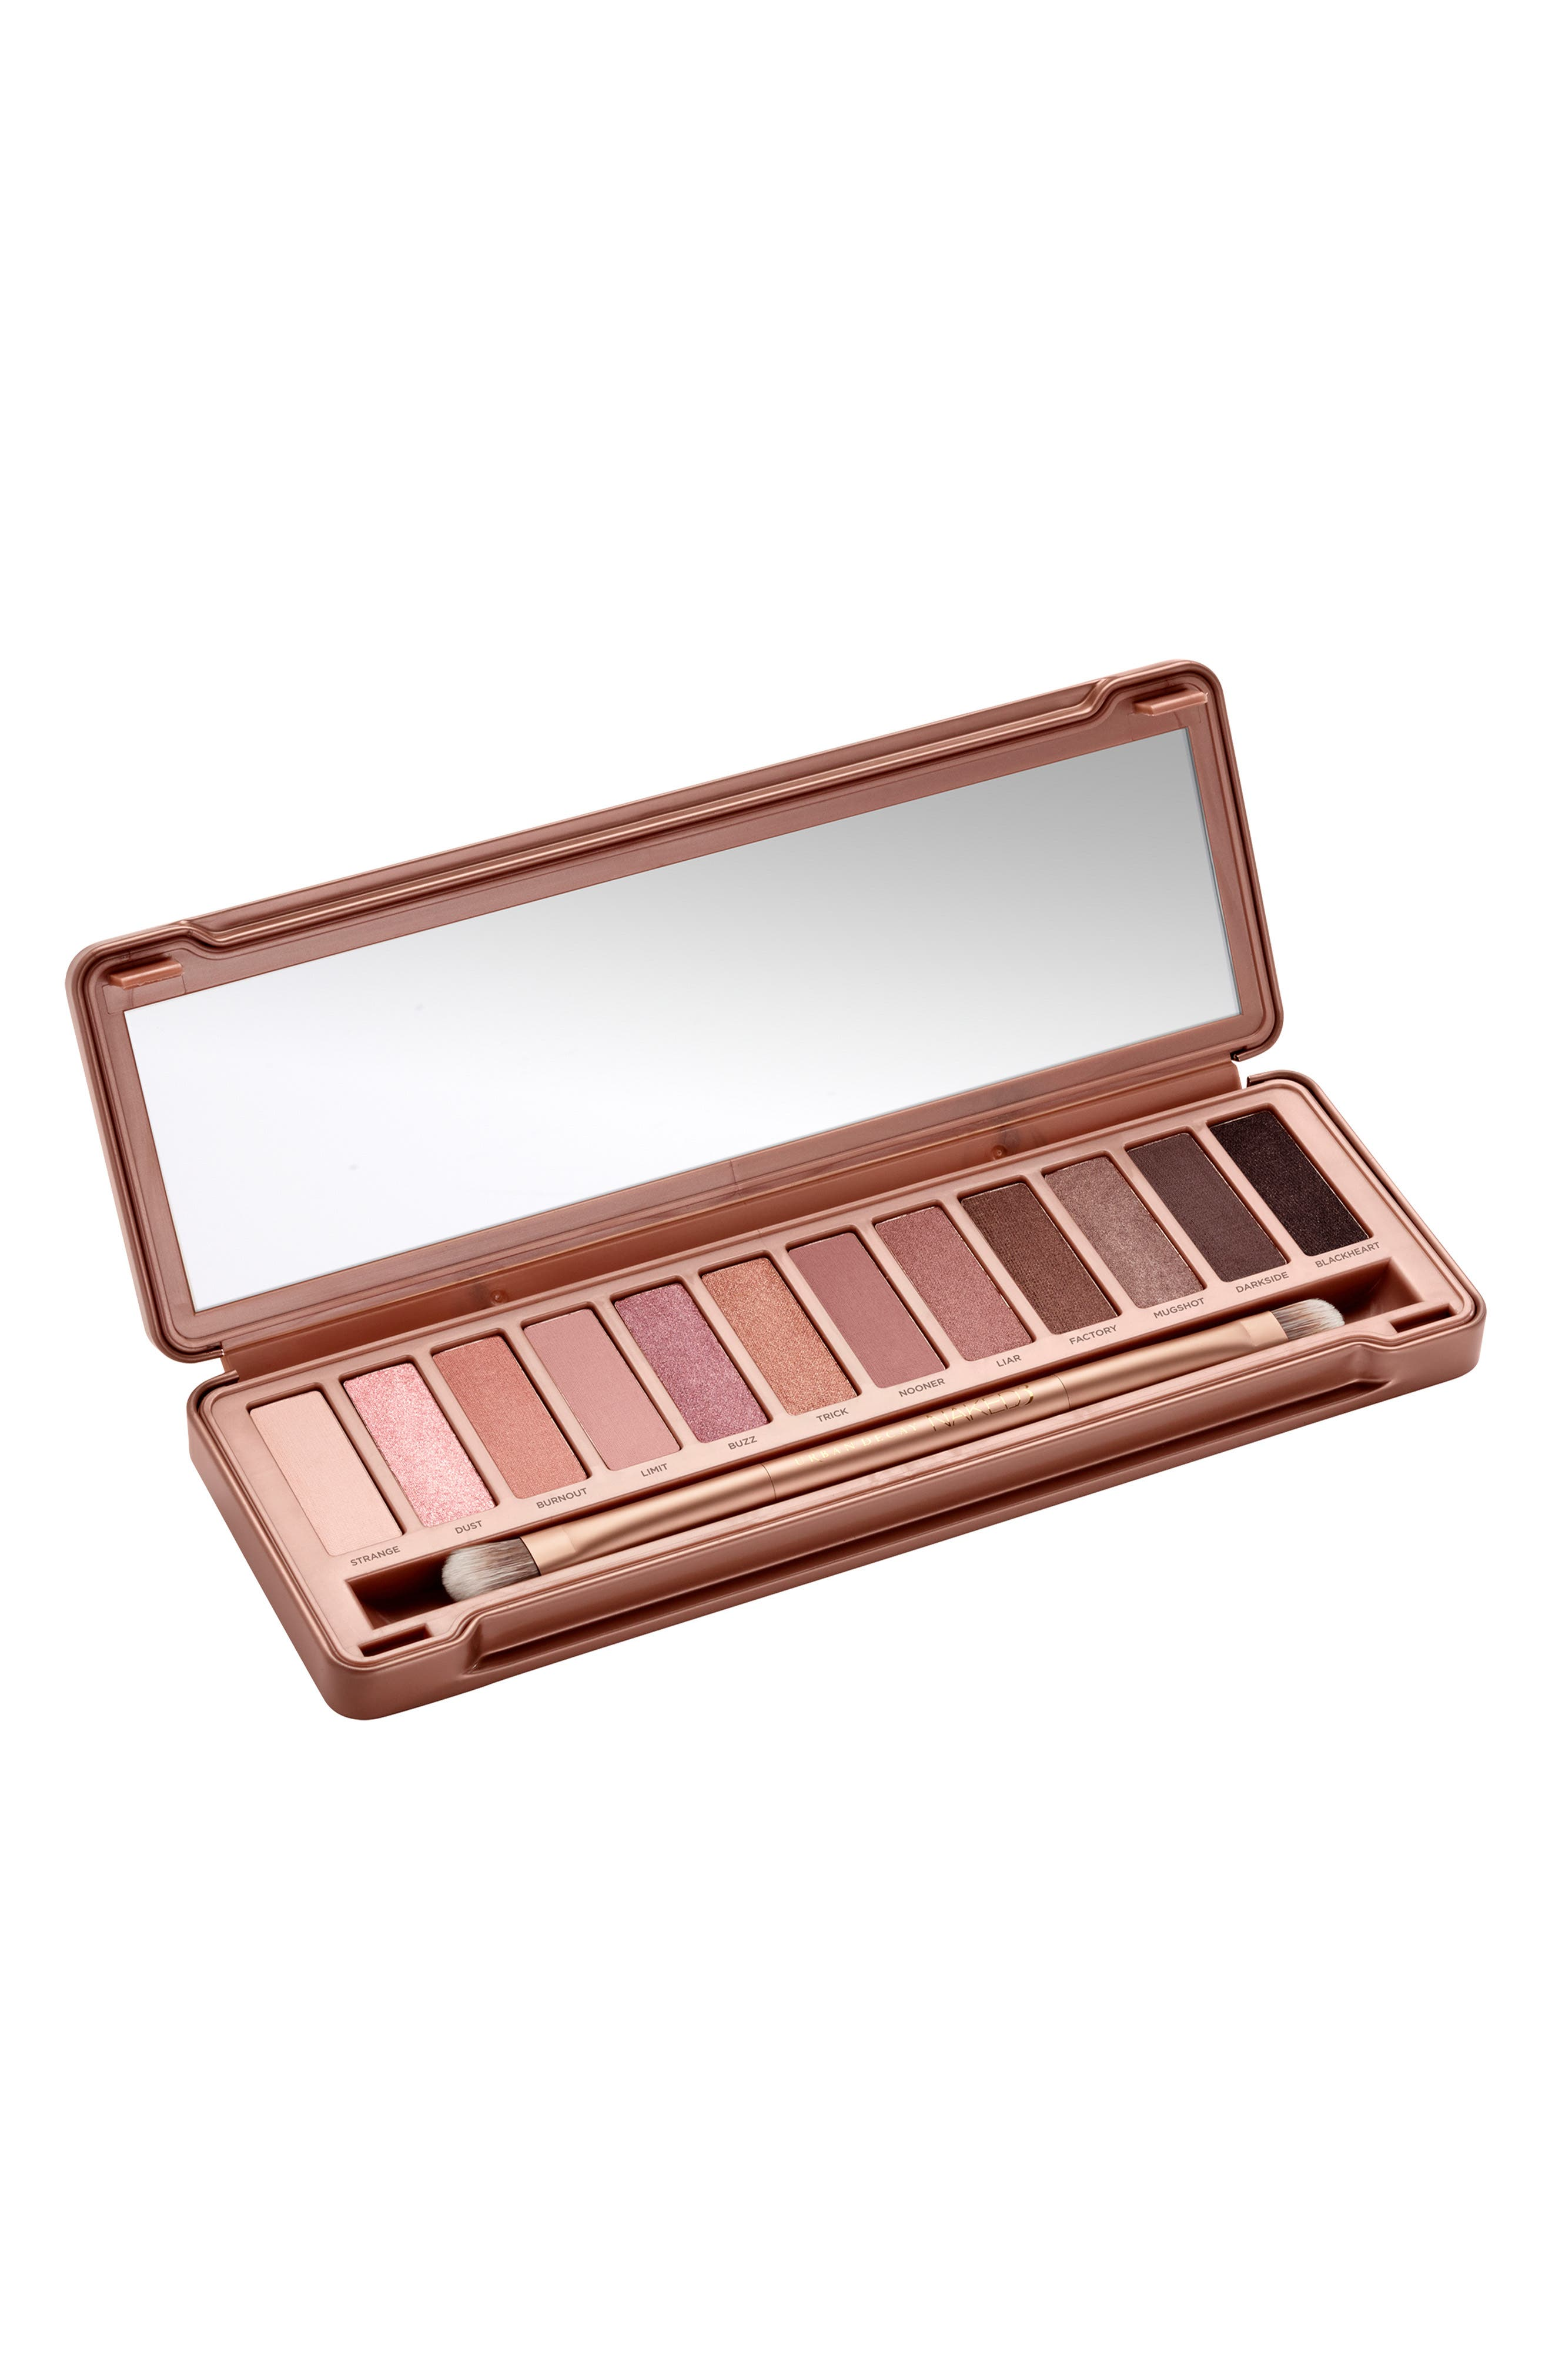 URBAN DECAY Naked3 Palette, Main, color, NAKED3 PALETTE